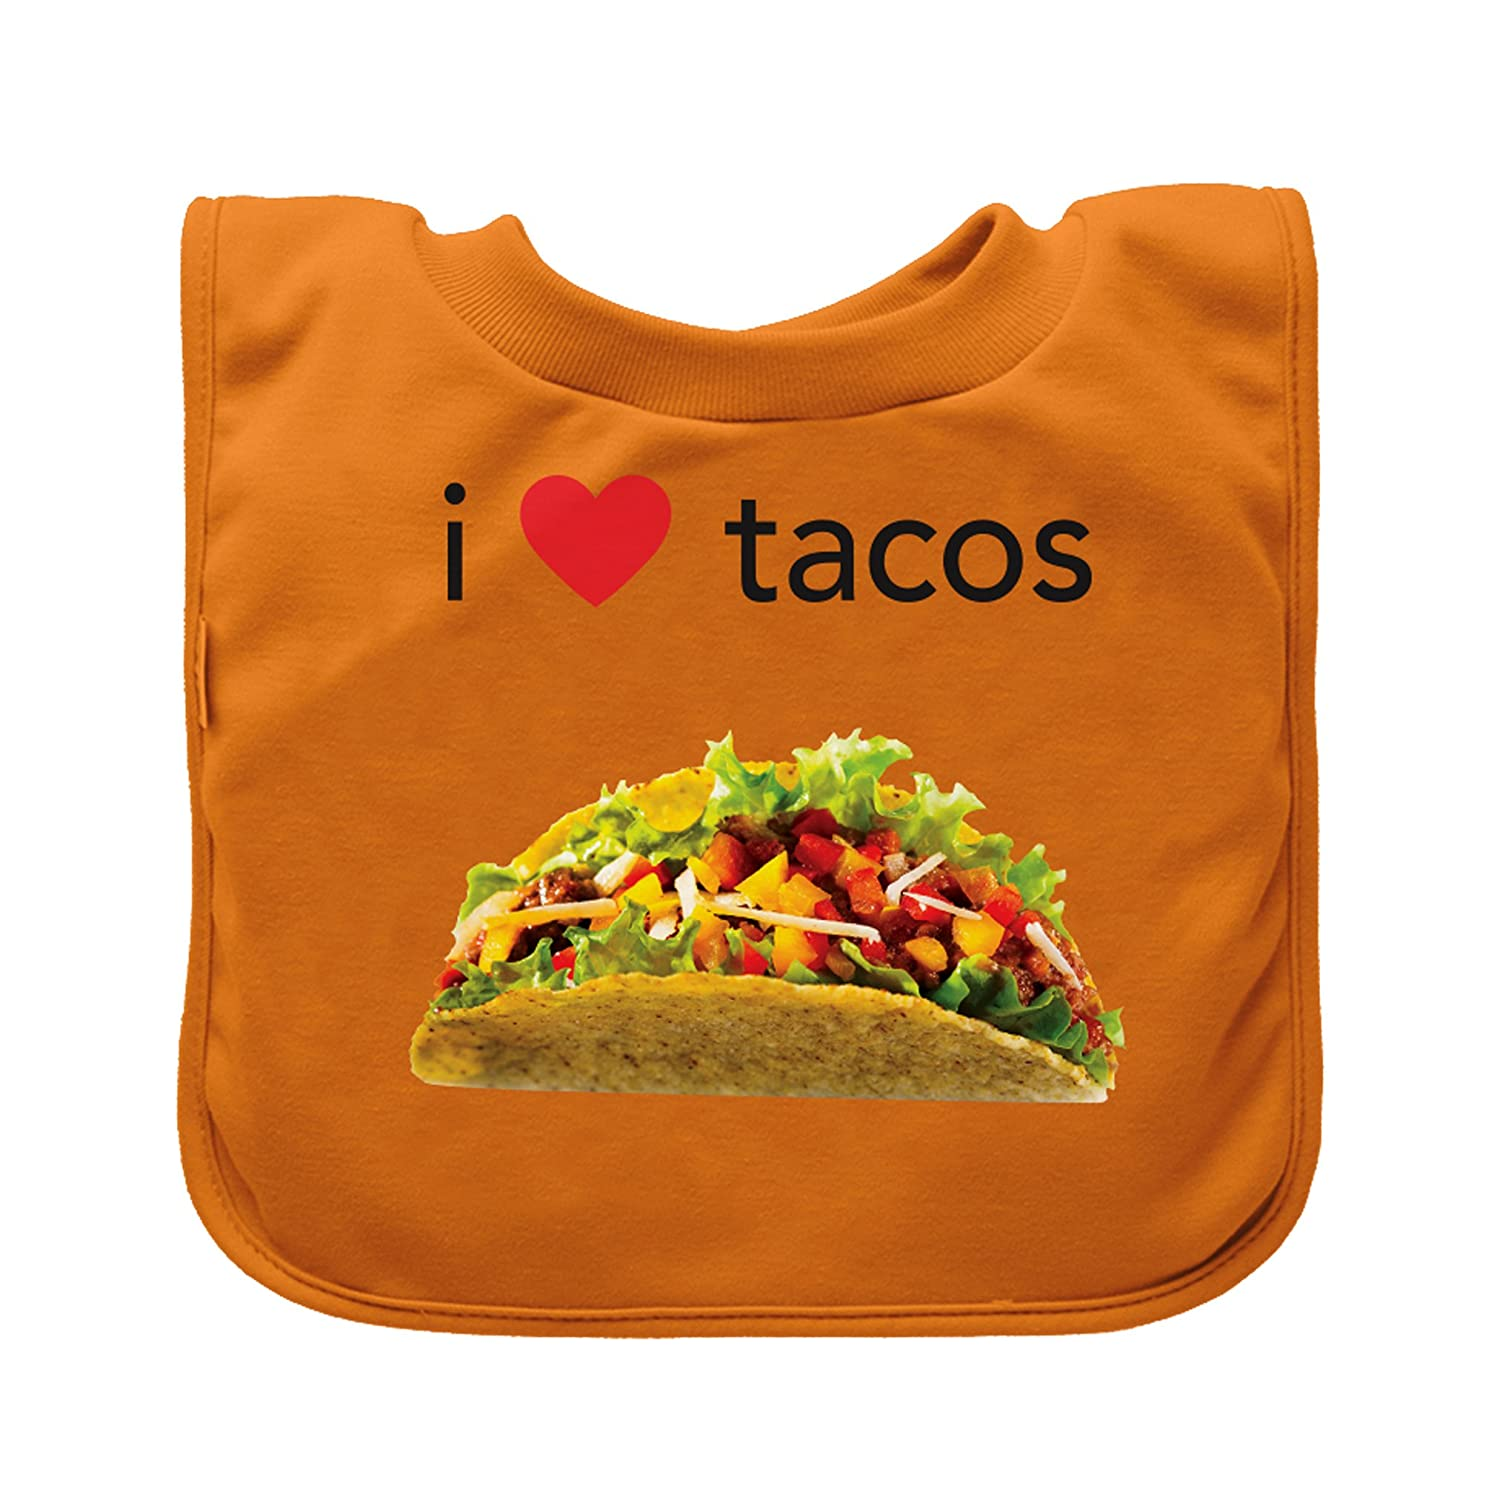 green sprouts Pull-Over Food Bib Convenient Stay-Put Protection Absorbent Cotton, Wide-Coverage, Machine Washable